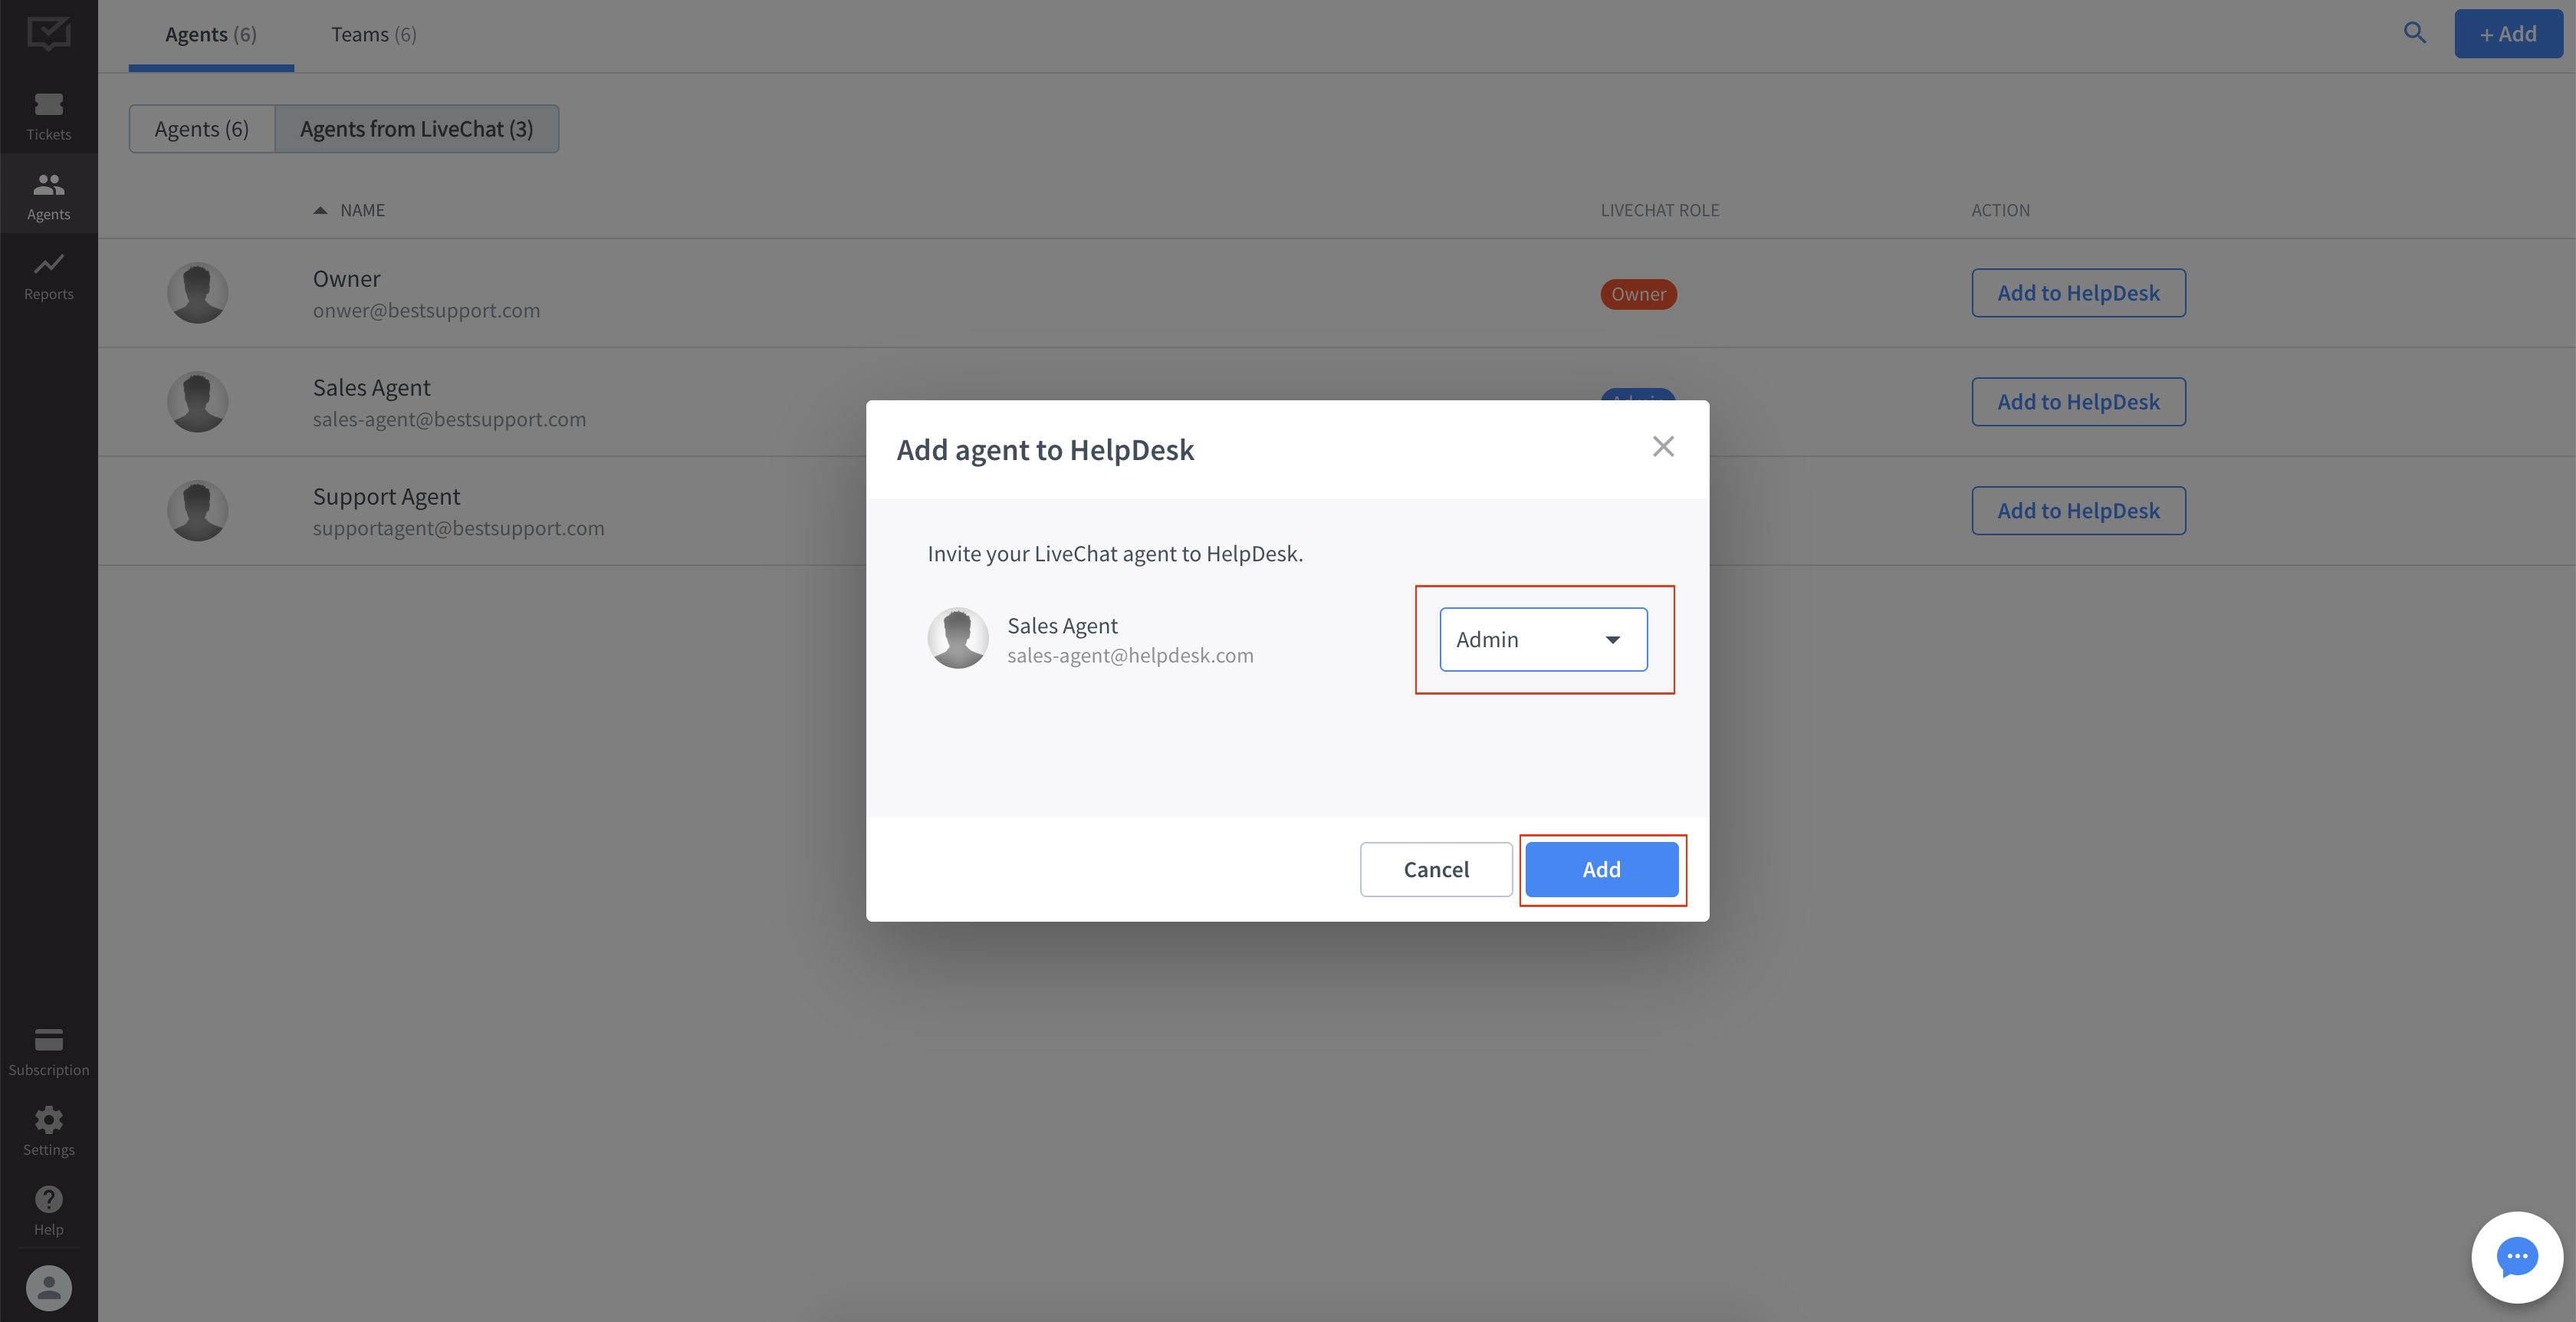 Inviting LiveChat agent to HelpDesk - final step